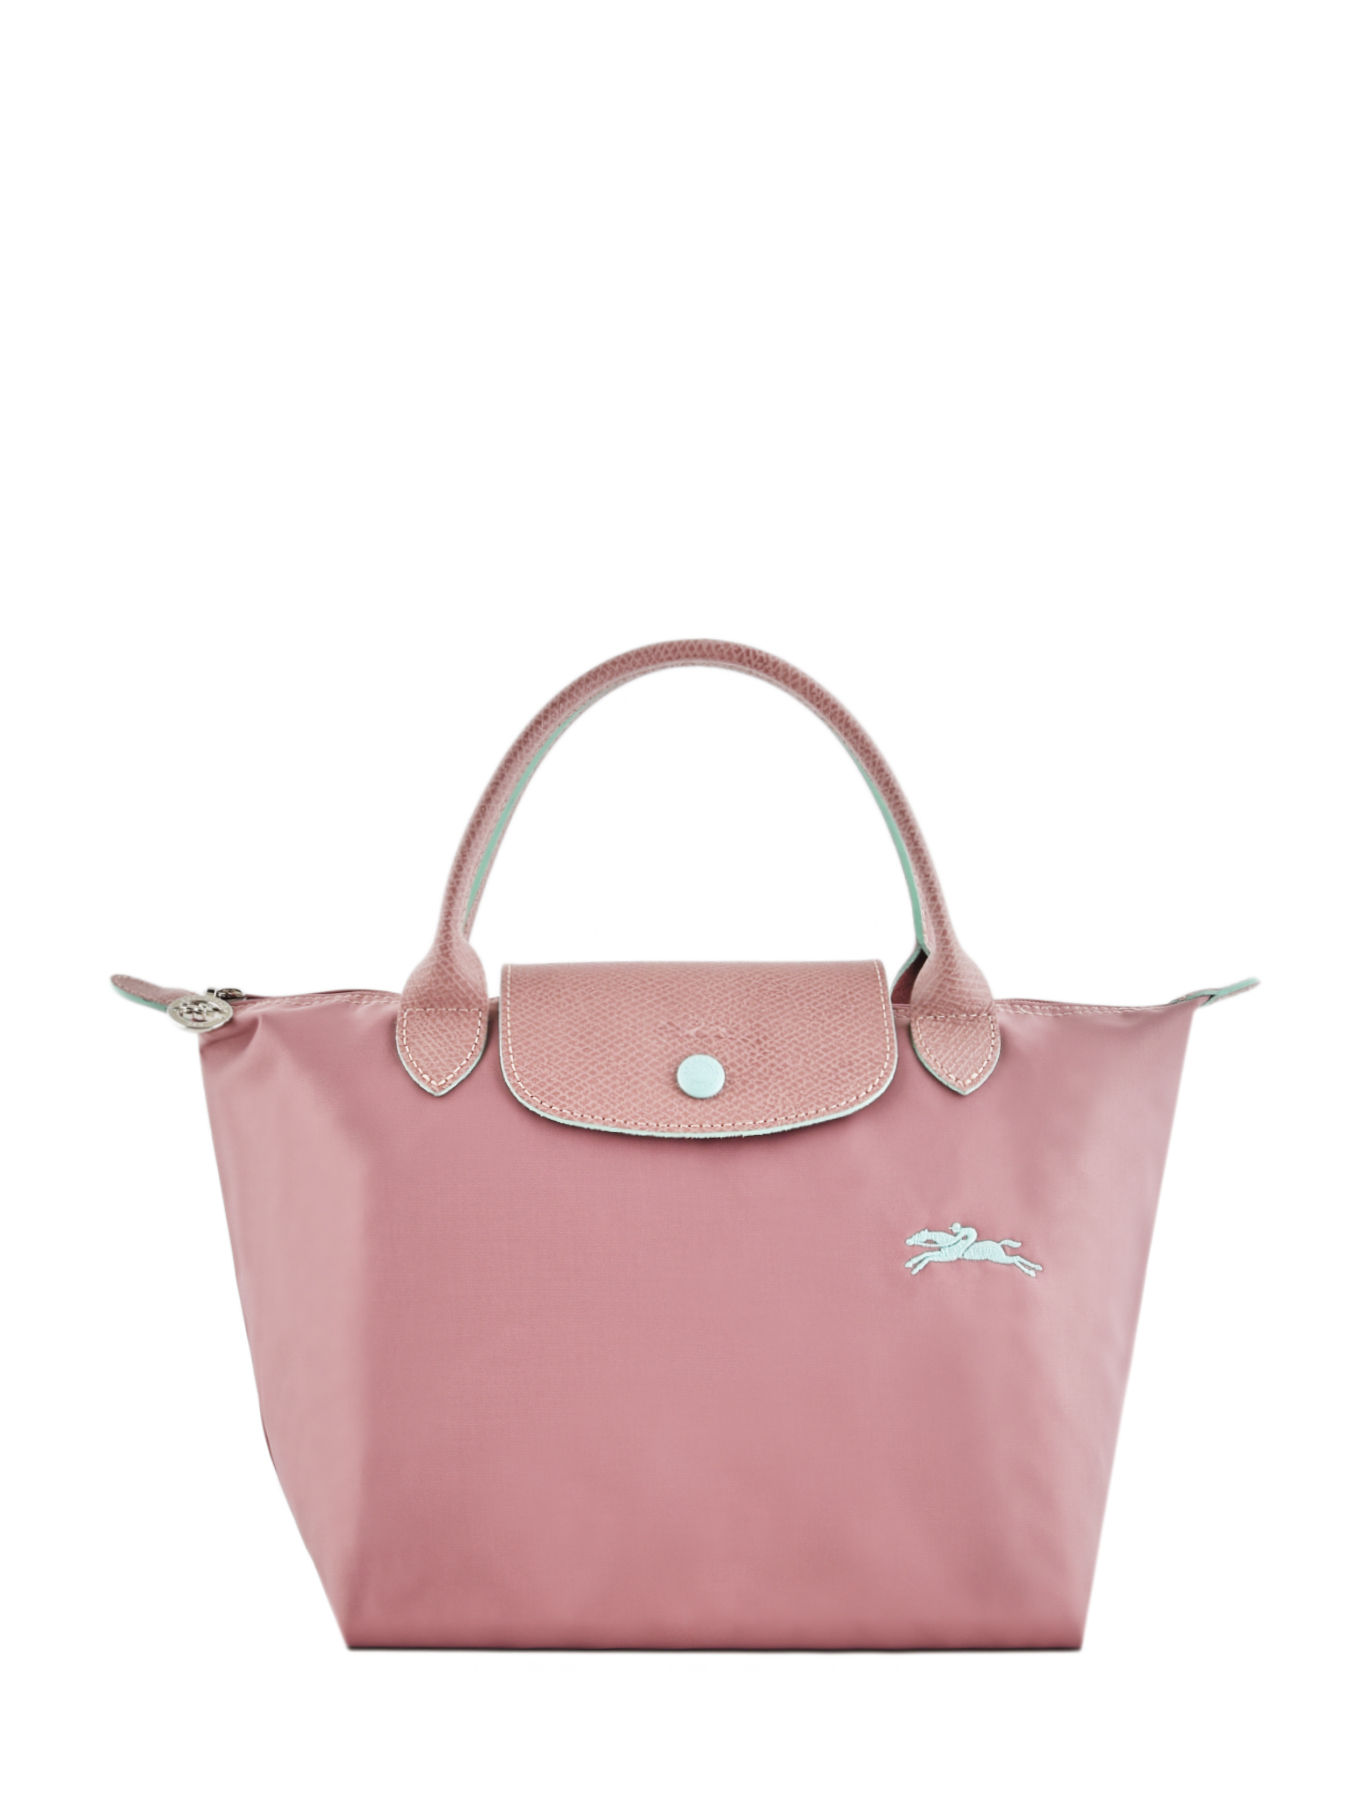 7a1b6800cce ... Longchamp Le pliage club Handbag Pink ...